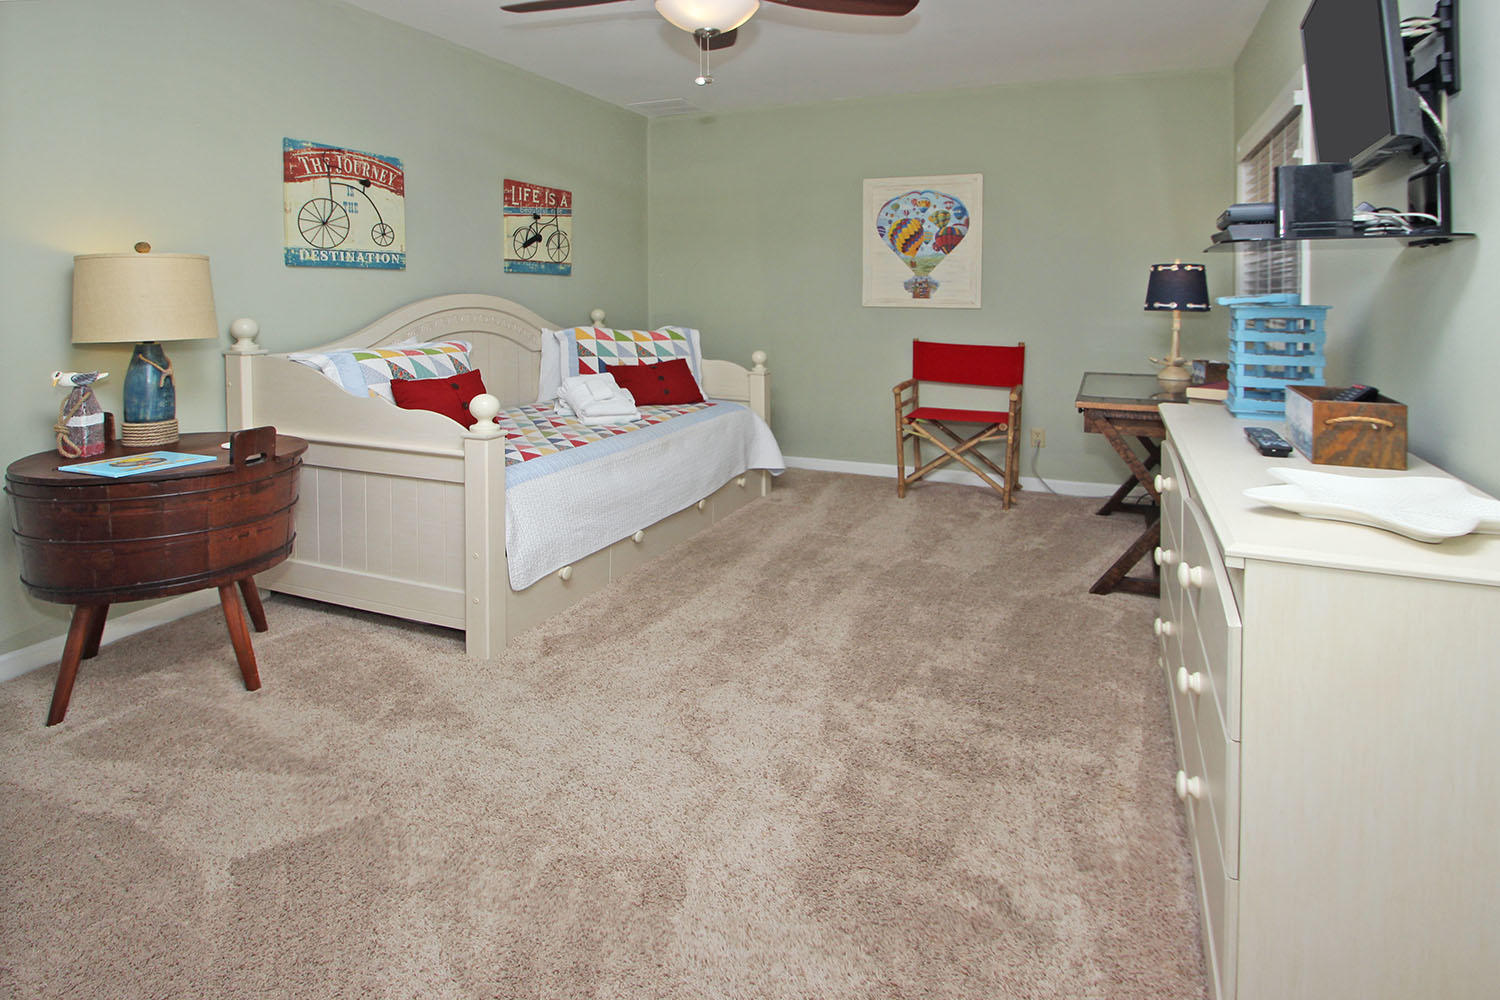 Guest bedroom with day bed and trundle bed